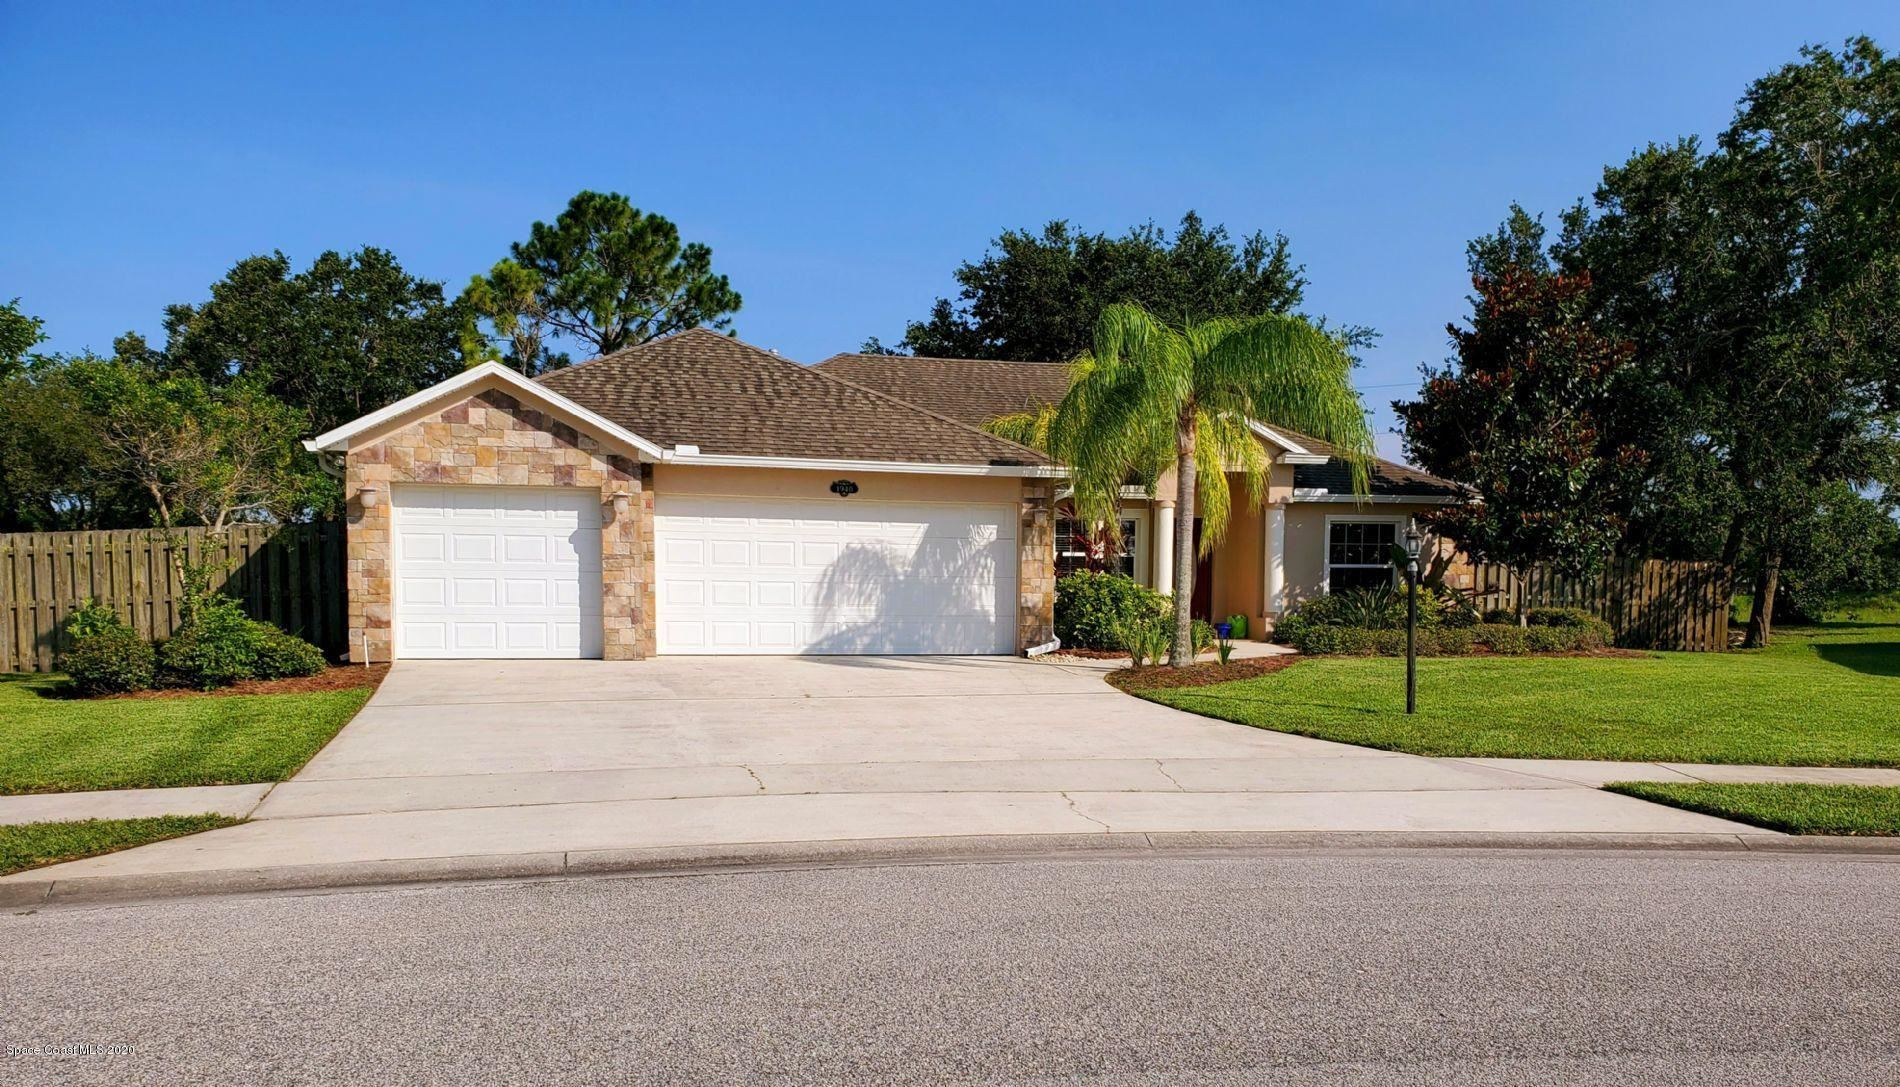 1940 Gloria Circle, Palm Bay, FL 32905 - #: 885876